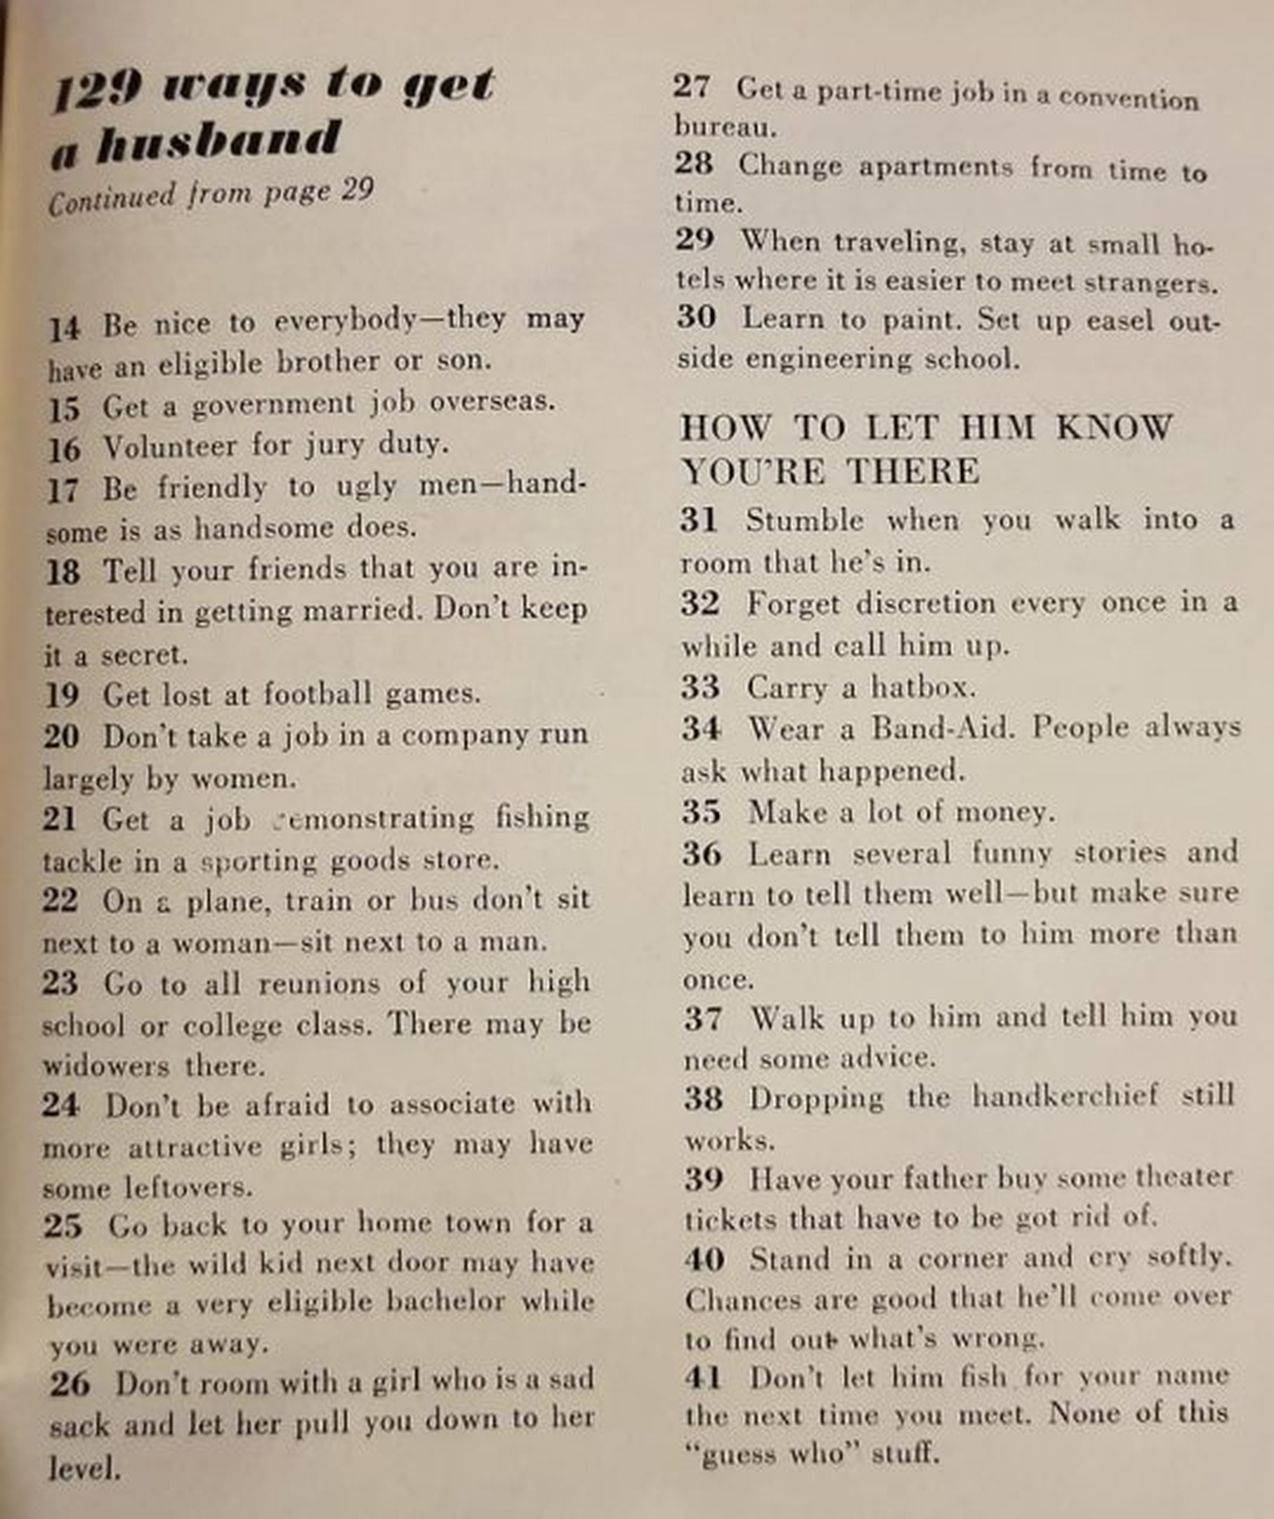 Bible verse to find a good wife